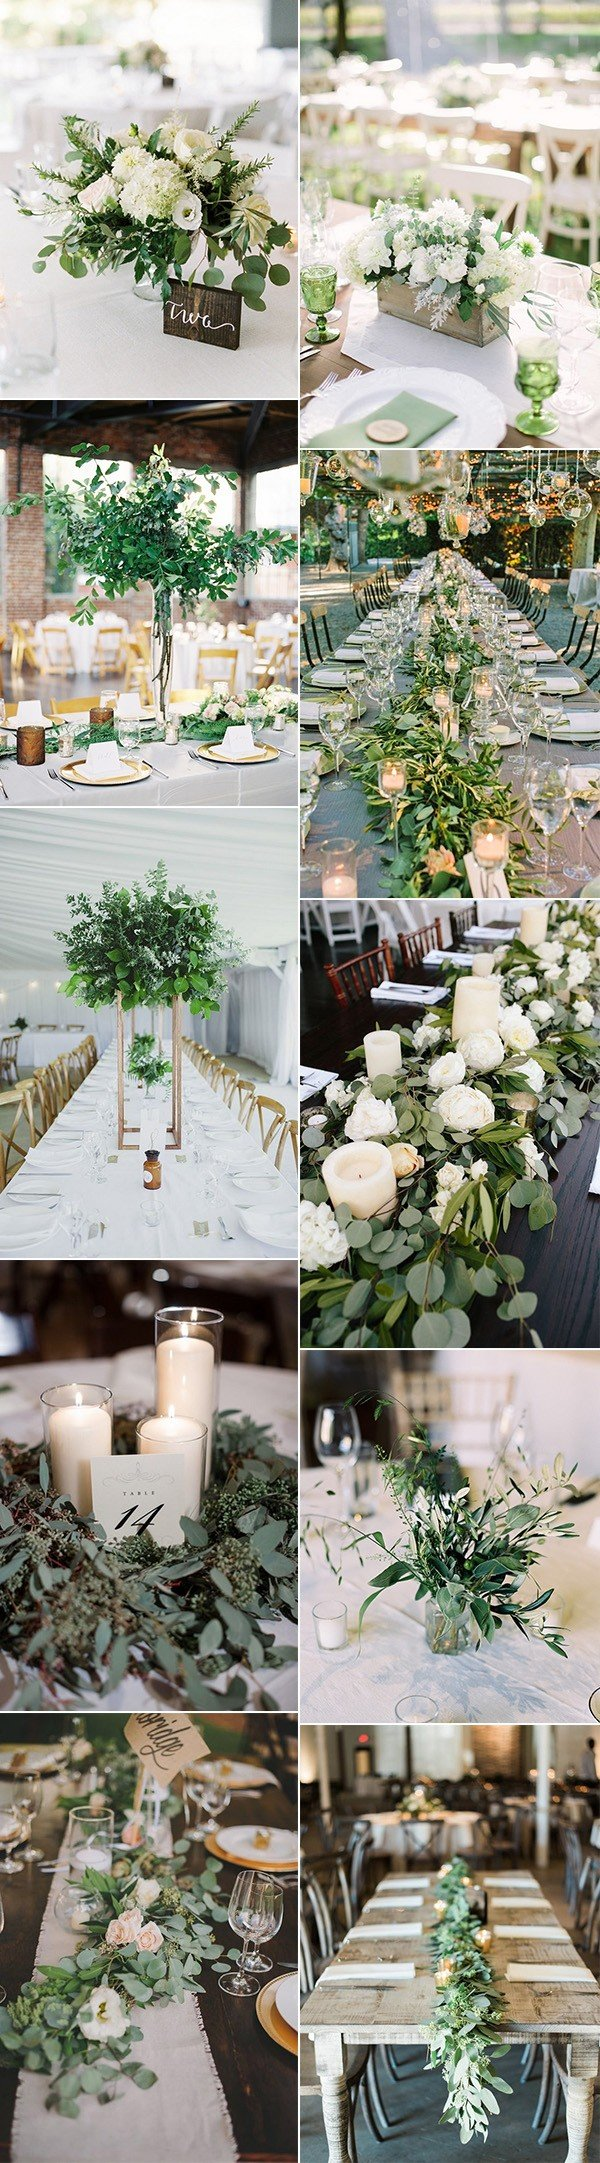 trending white and green wedding centerpiece ideas